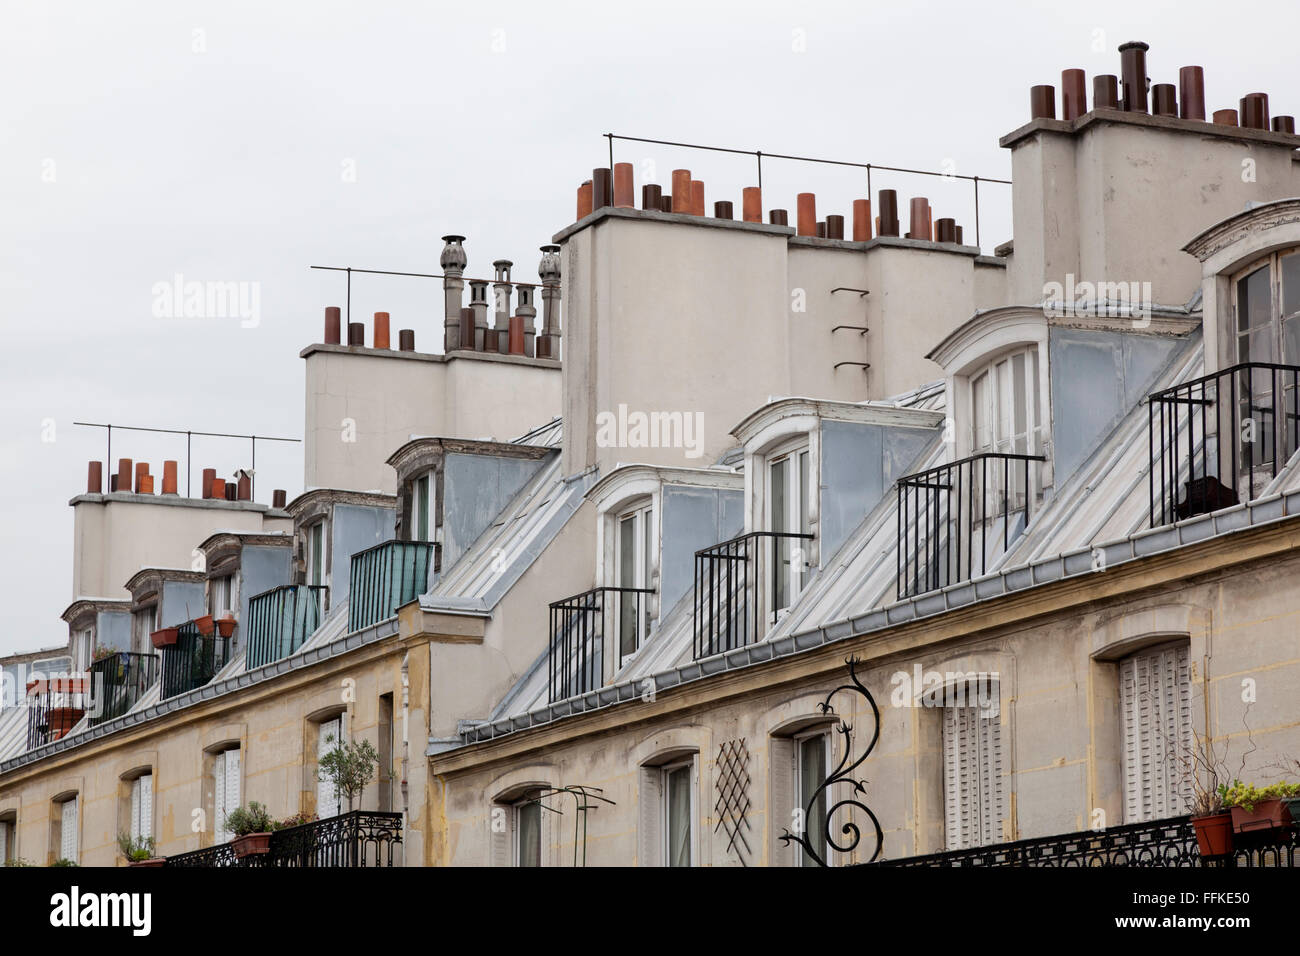 Roofs and chimneys in Paris France - Stock Image